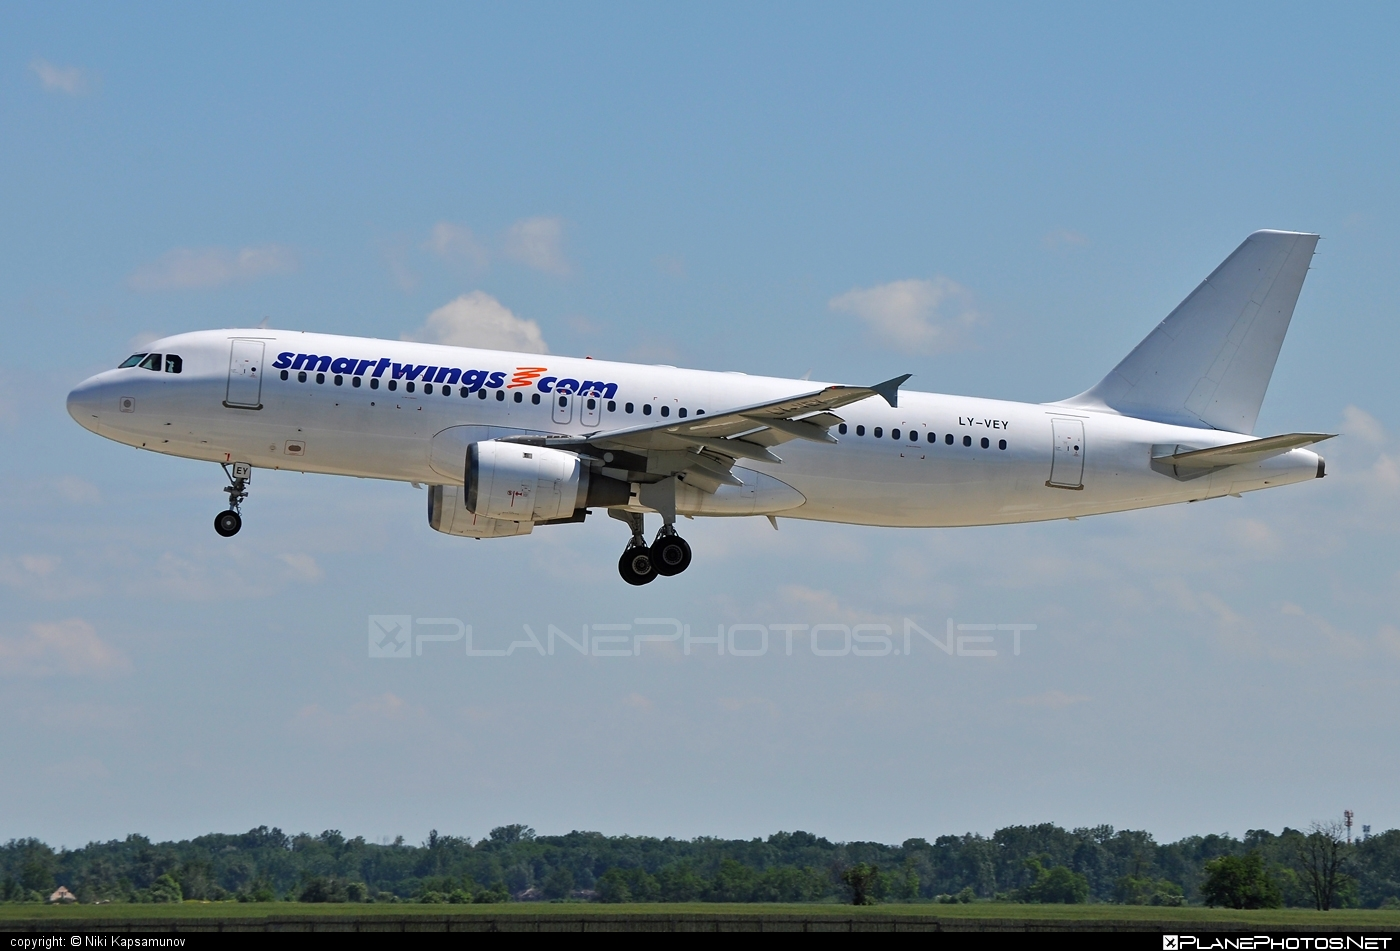 Airbus A320-212 - LY-VEY operated by Smart Wings #a320 #a320family #airbus #airbus320 #smartwings